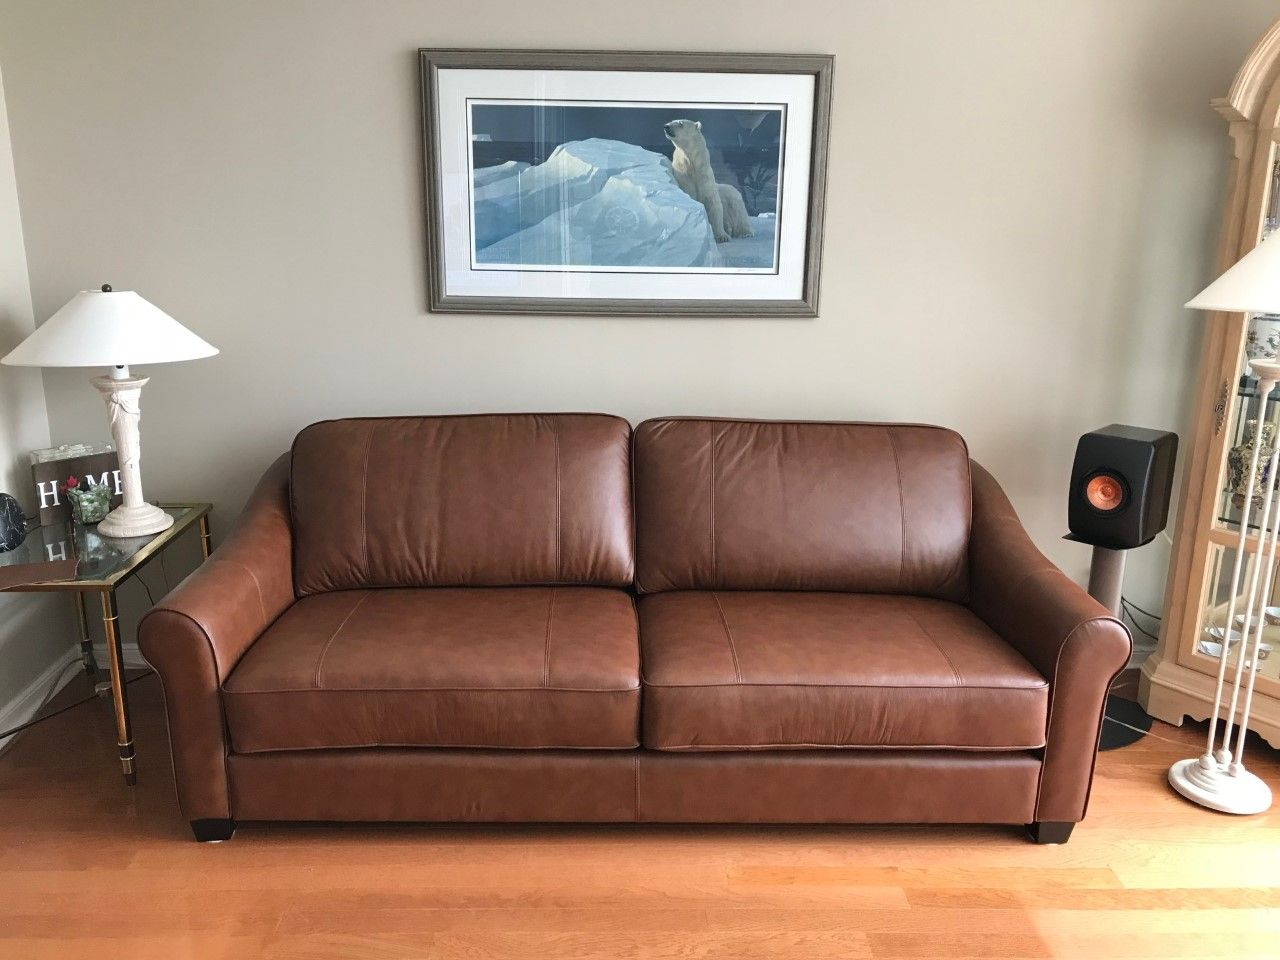 Leather Sofa Leather Sectional Custom Made In Canada With Images Italian Leather Sofa Italian Leather Furniture Leather Furniture